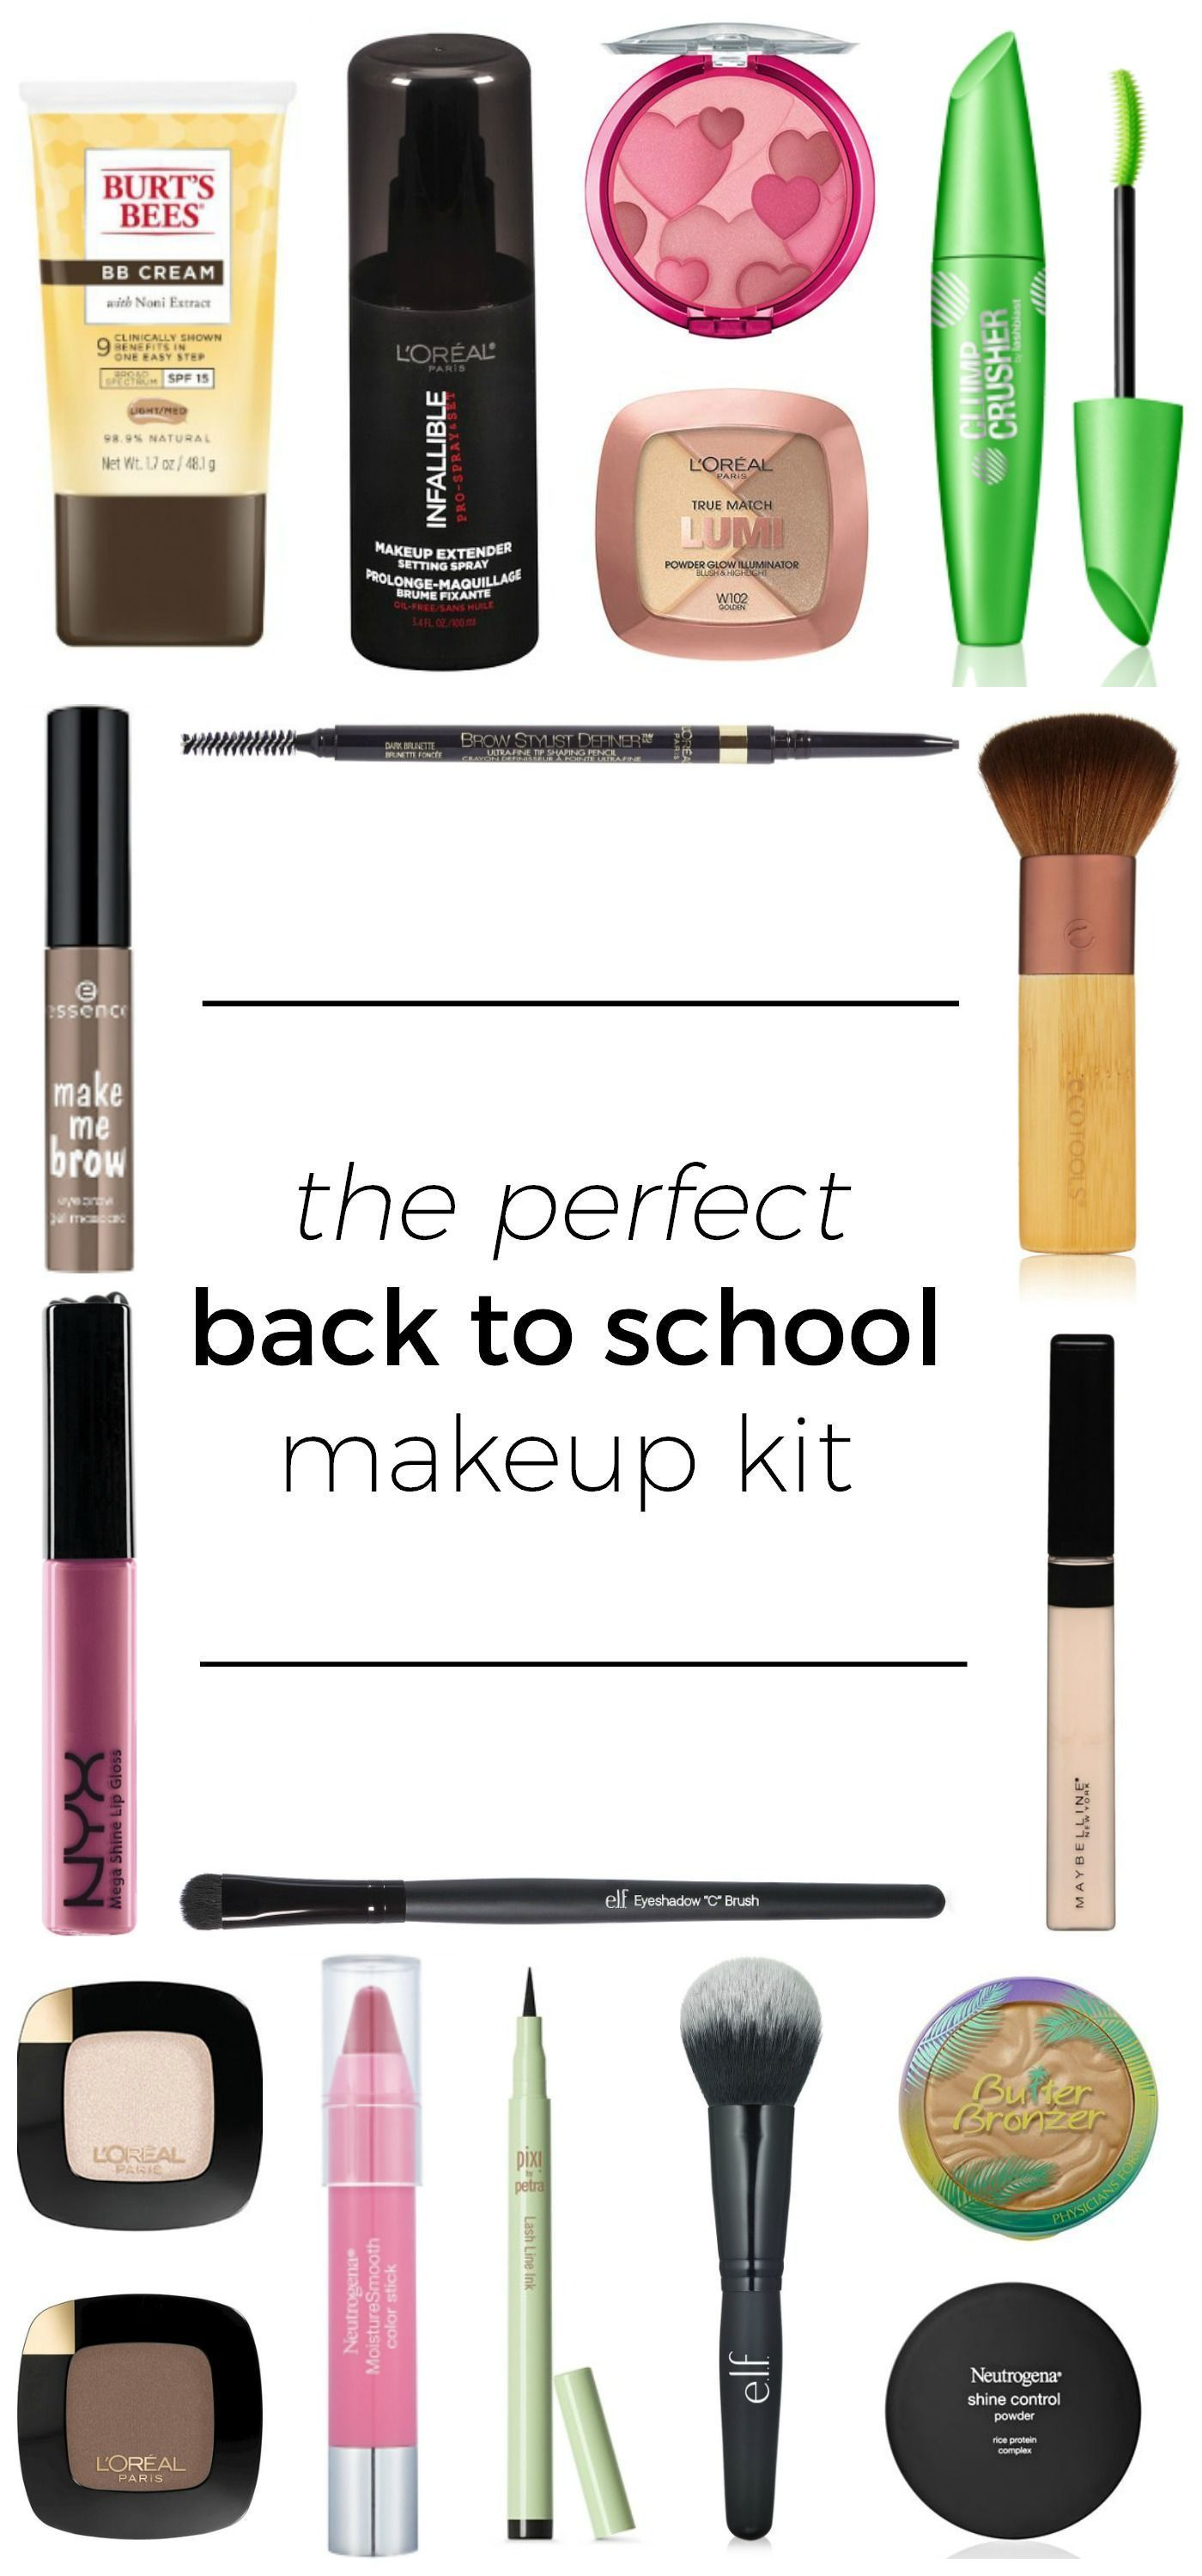 The perfect back to school makeup kit featuring affordable drugstore